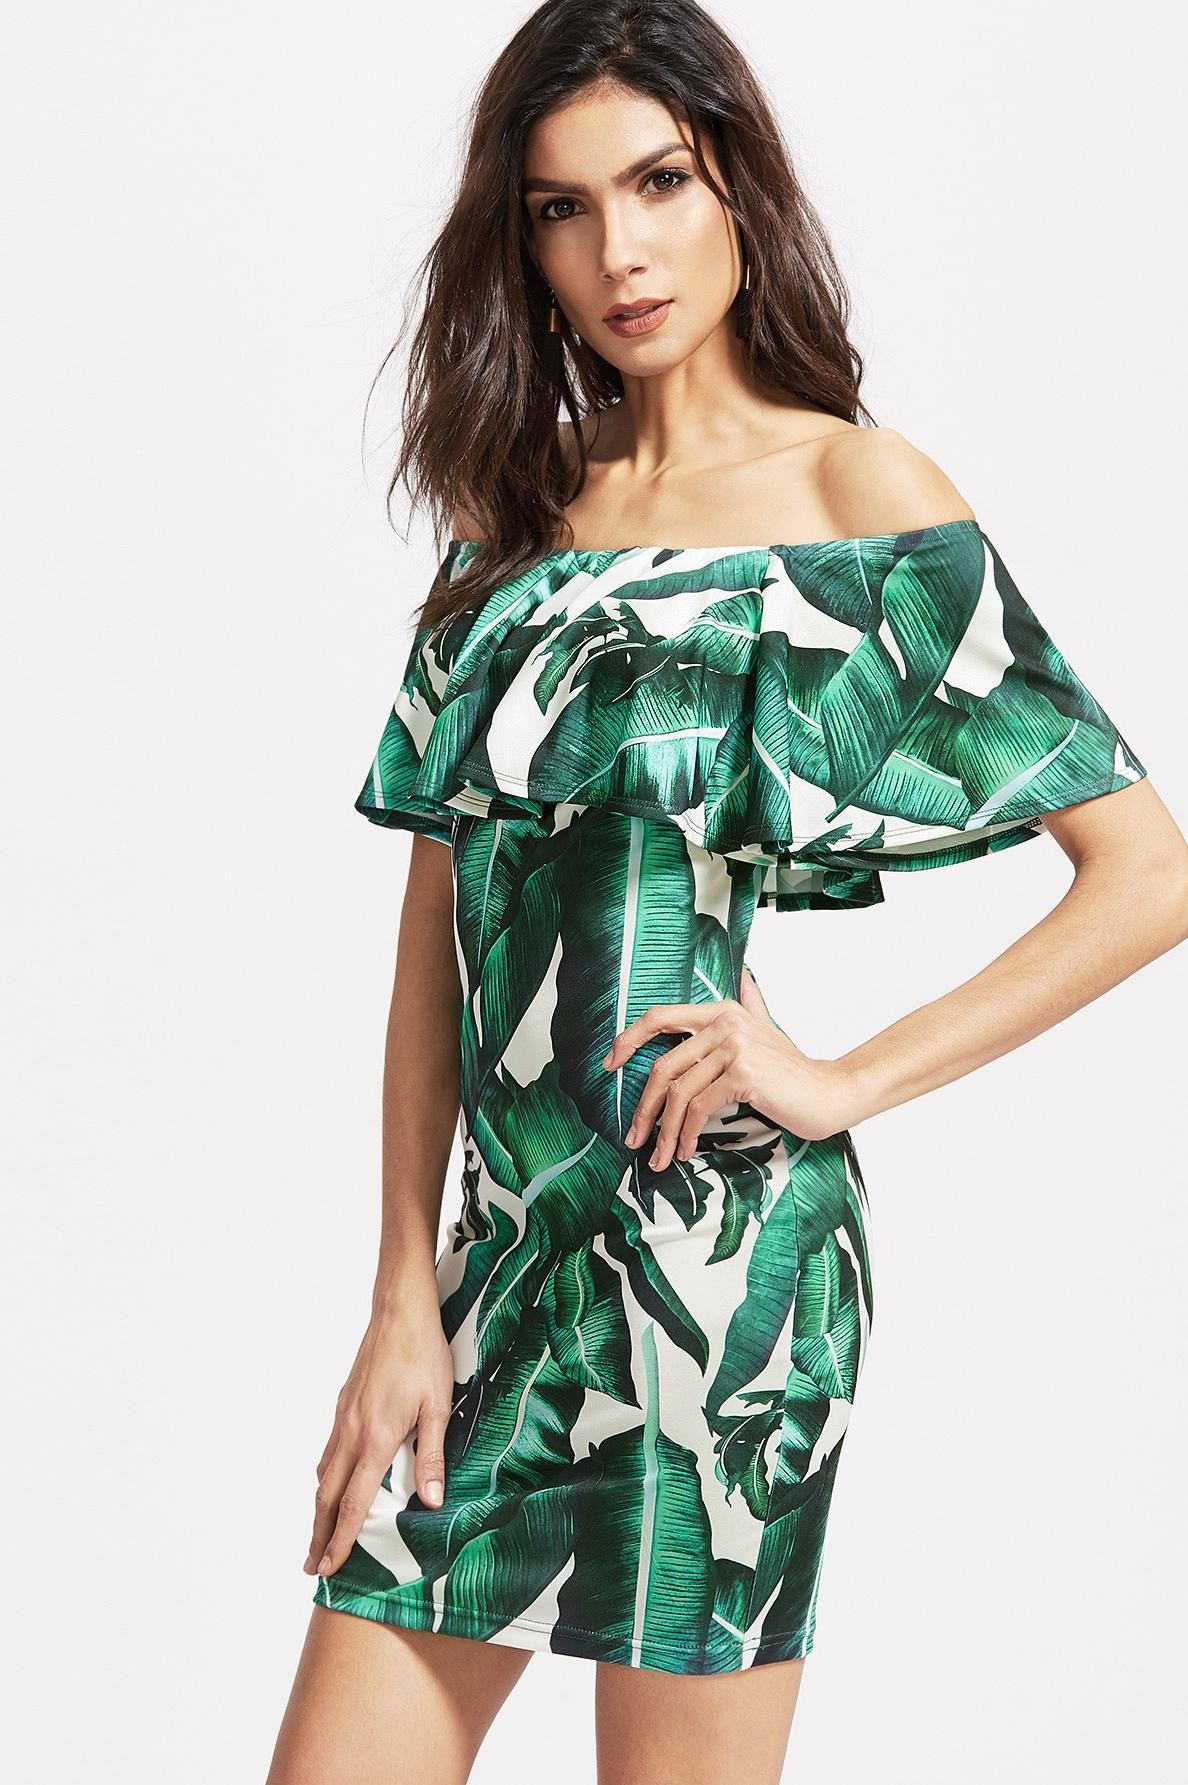 EBay <font><b>AliExpress</b></font> 2018 Europe And America New Style Wrap-around Flounced Japanese Banana Leaf Printed Slim Fit Bale Arm <font><b>Dress</b></font> image